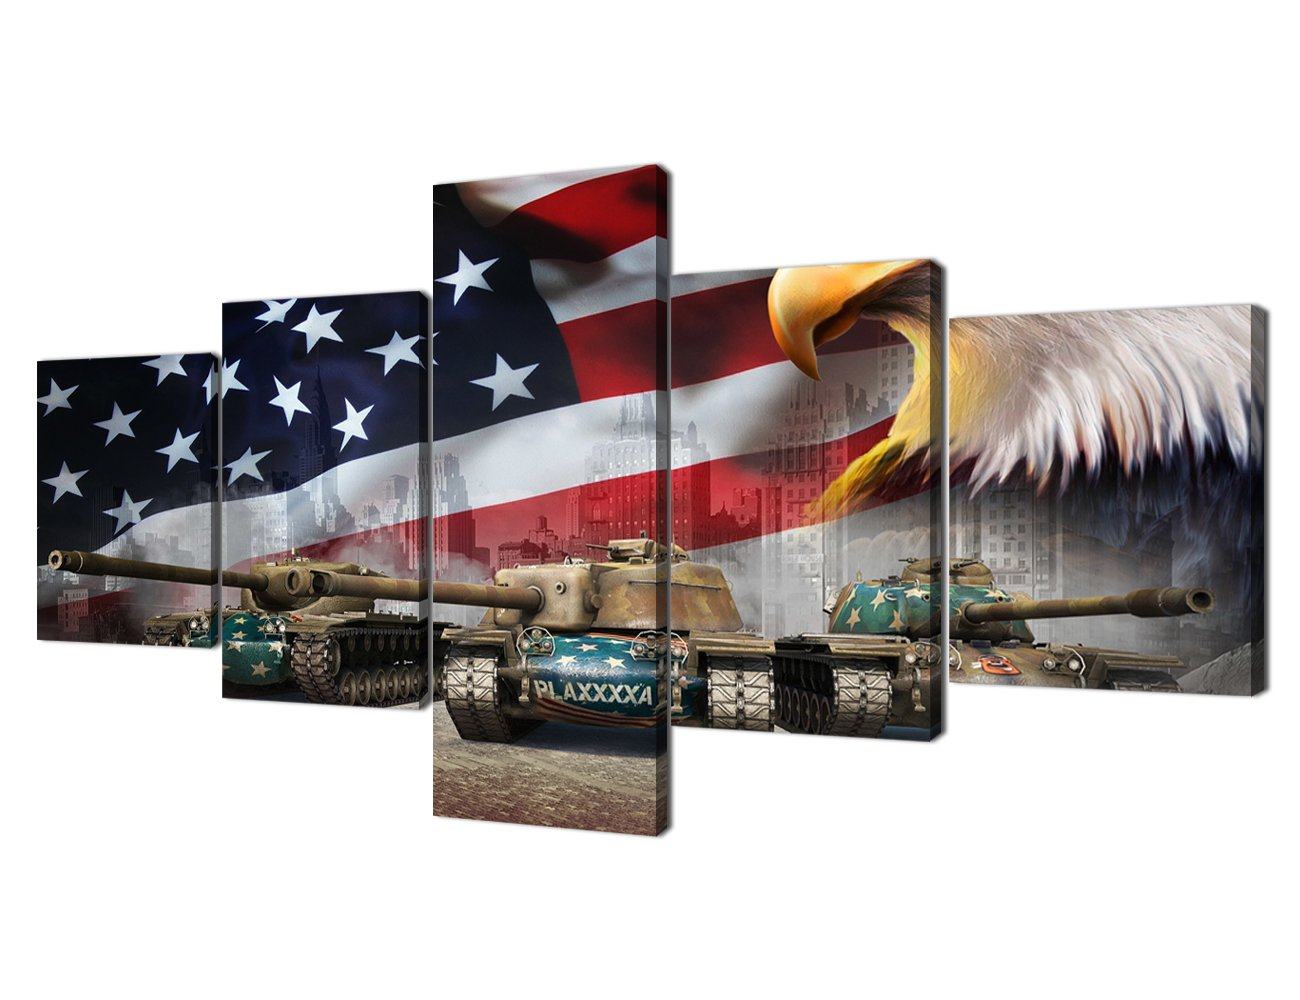 Wallart_22 50''W x 24''H Damaged Weapon Gun Canvas Print Pictures Framed, Modern Contemporary Paintings on Canvas Posters and Prints Wall Art for Living Room Bedroom Home Decor Gallery-wrapped Art 5 Piece Set (60''W x 32''H)